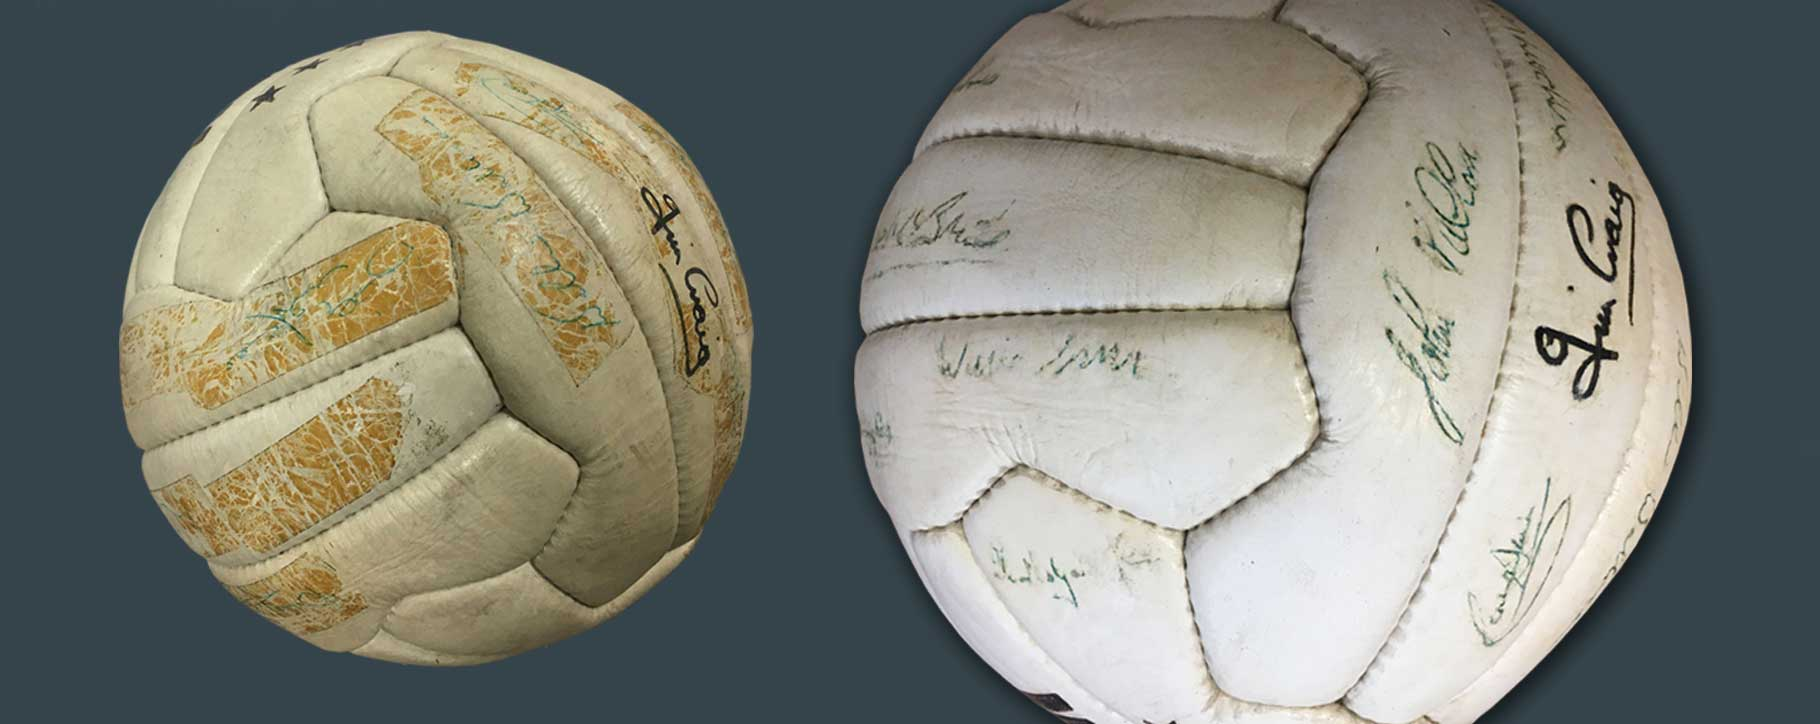 celtic football before and after restoration